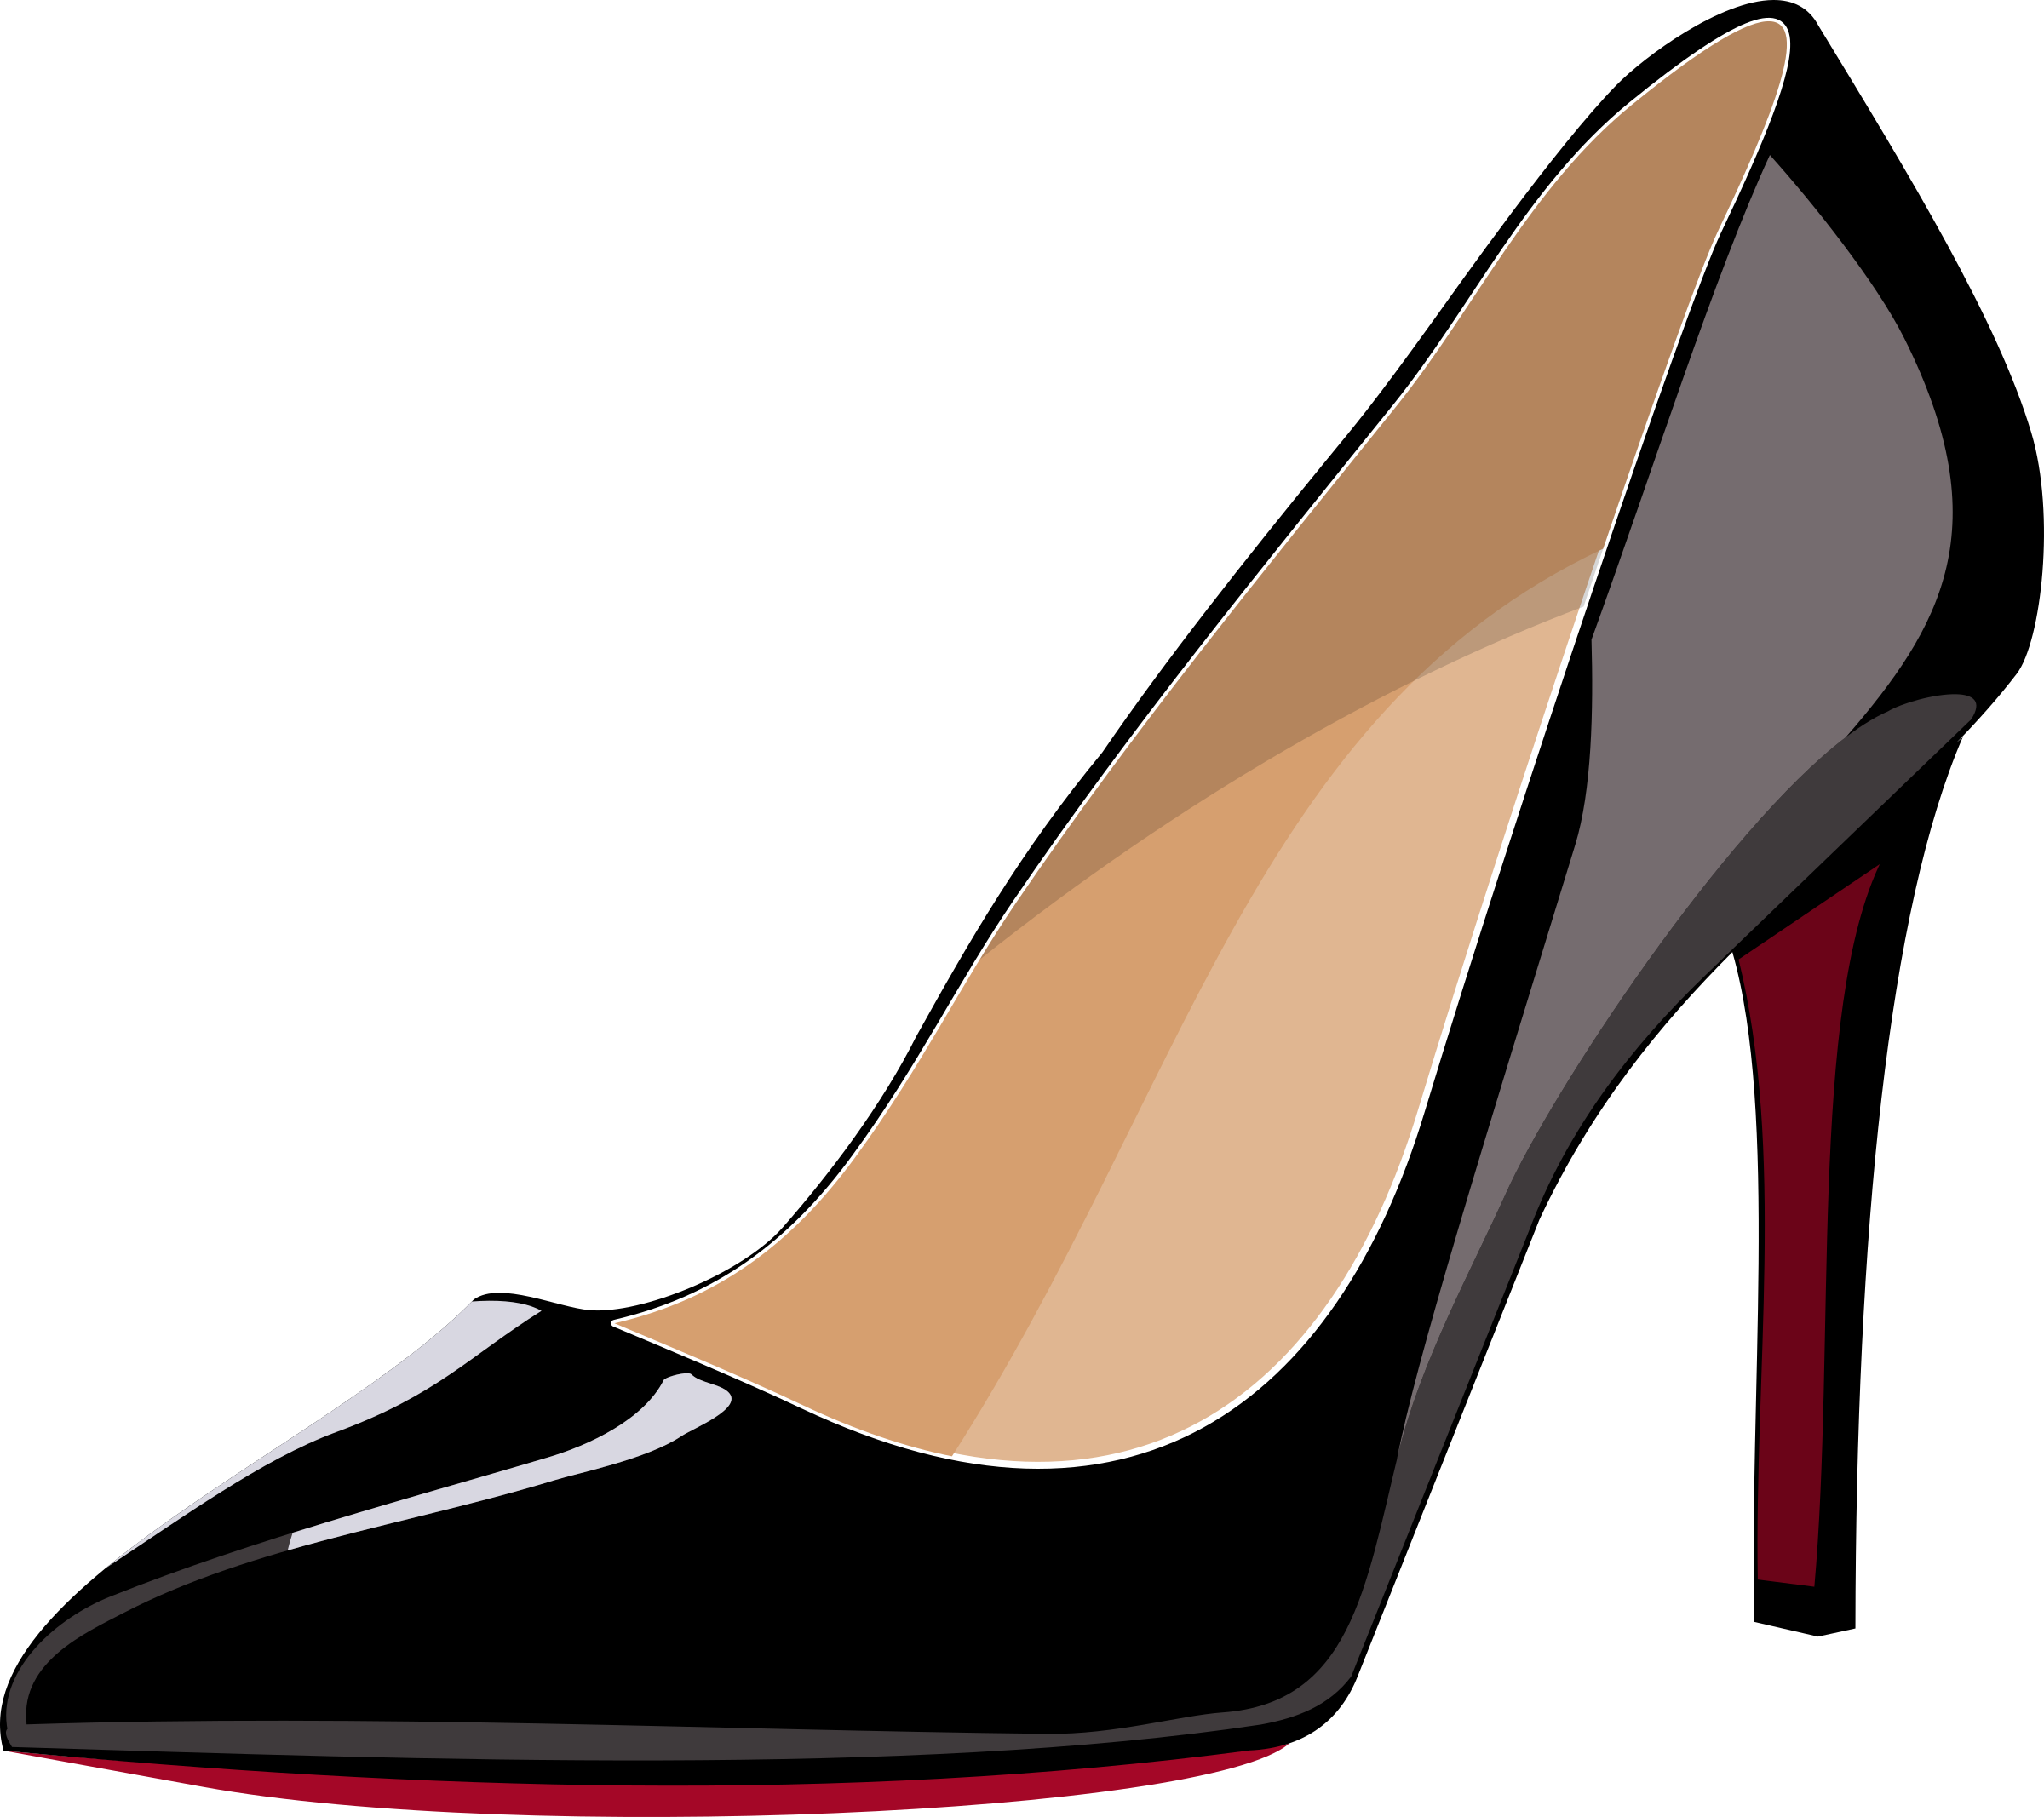 woman shoe Icons PNG - Free PNG and Icons Downloads